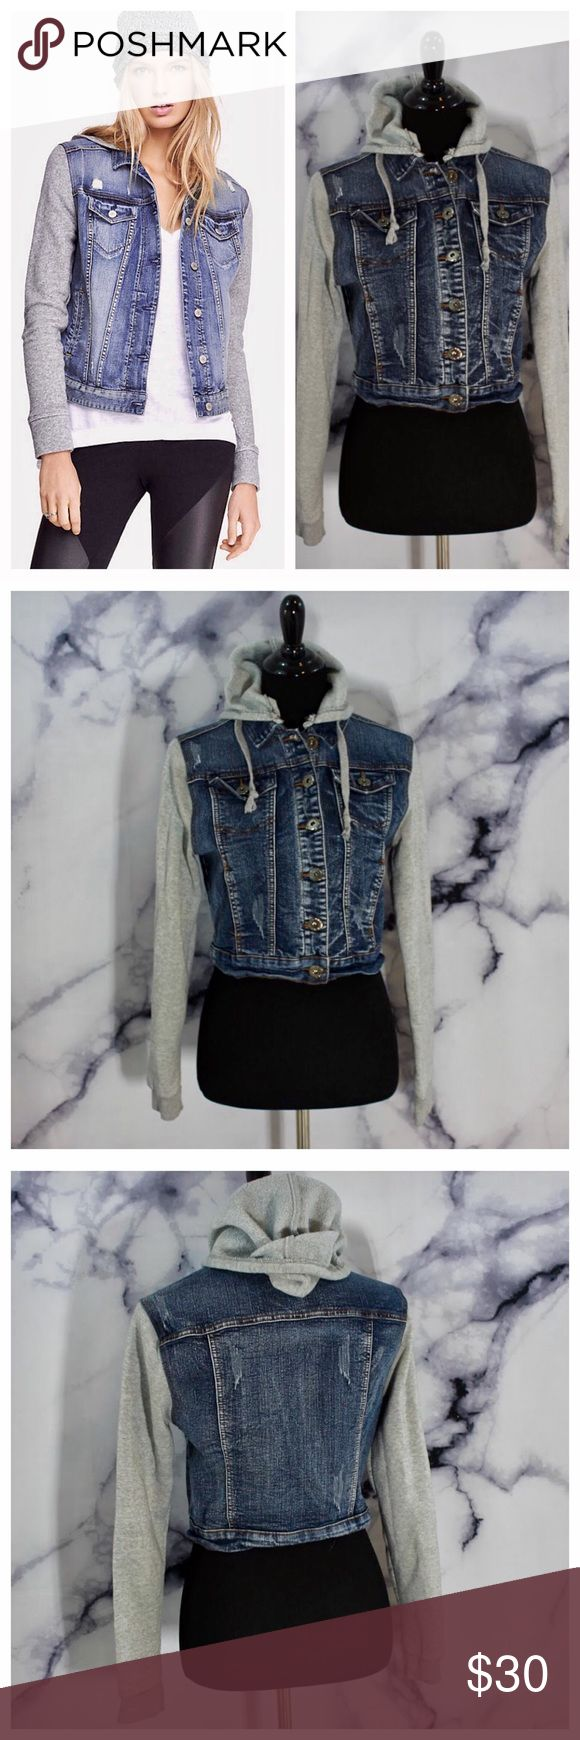 Distressed Sweatshirt Jean Jacket Hoodie Sweatshirt Jean jacket duo. Jacket has detachable hood option. Super cute and very comfortable! Size L Yuma Modern Princess Jackets & Coats Jean Jackets